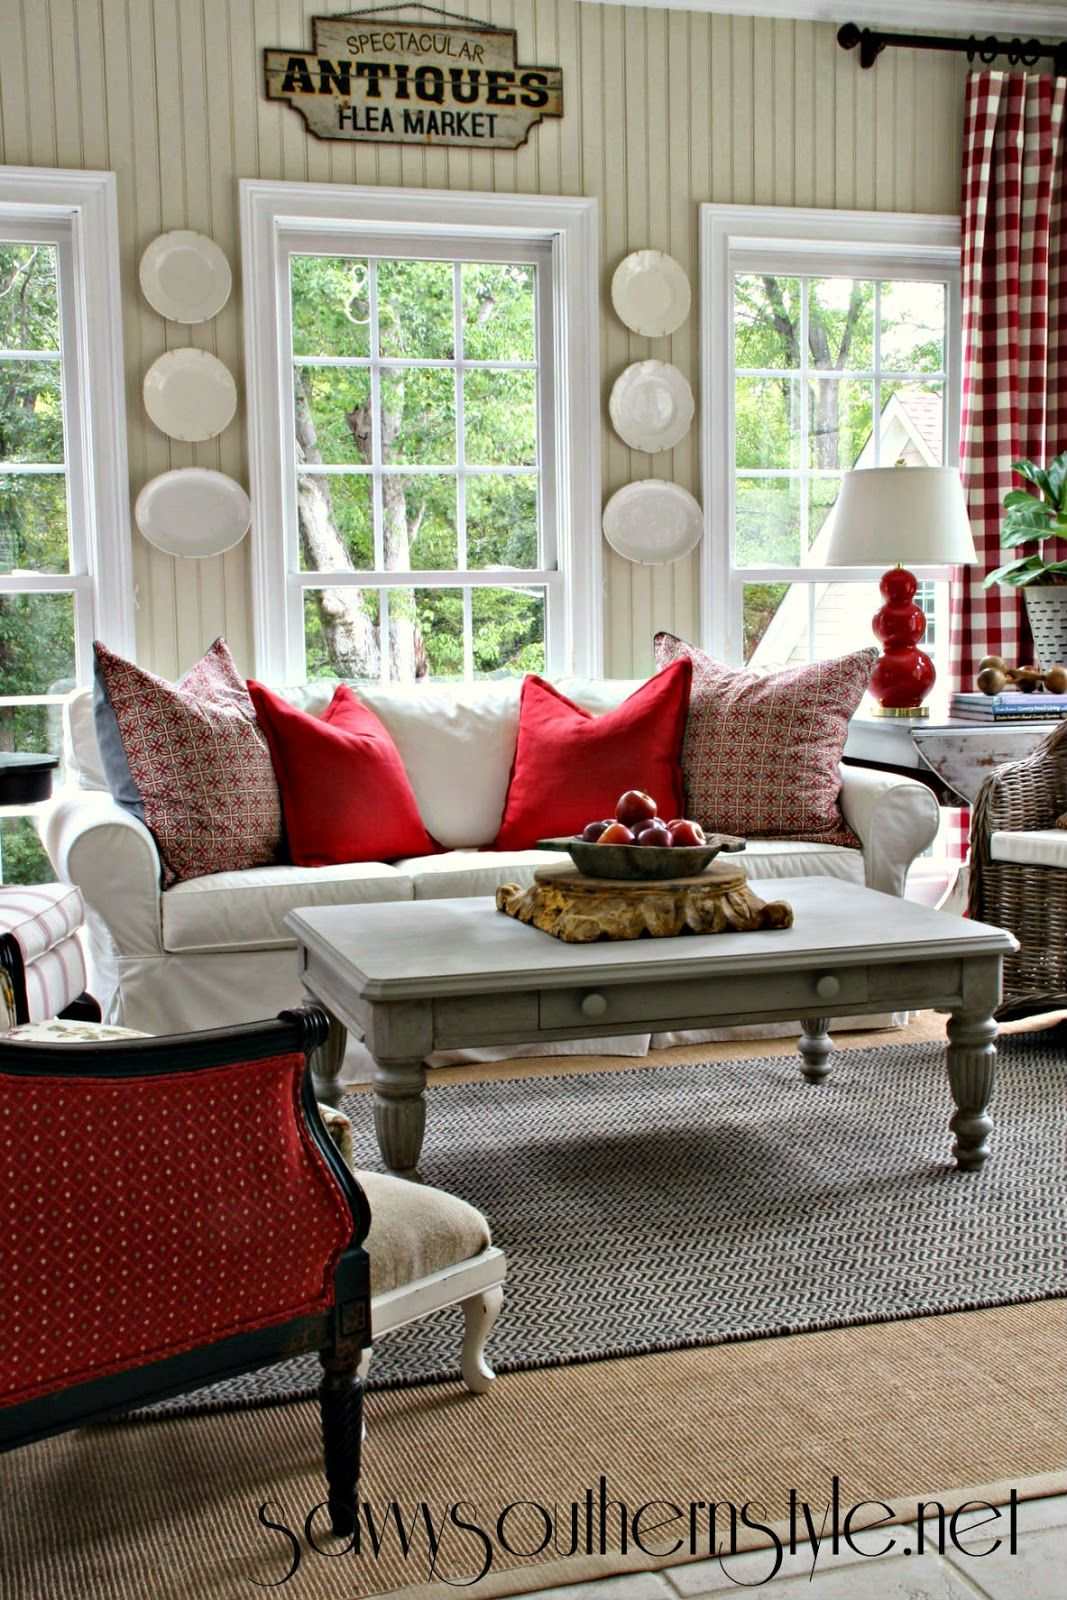 A Change of Colors in the Sunroom | Pinterest | Savvy southern style ...